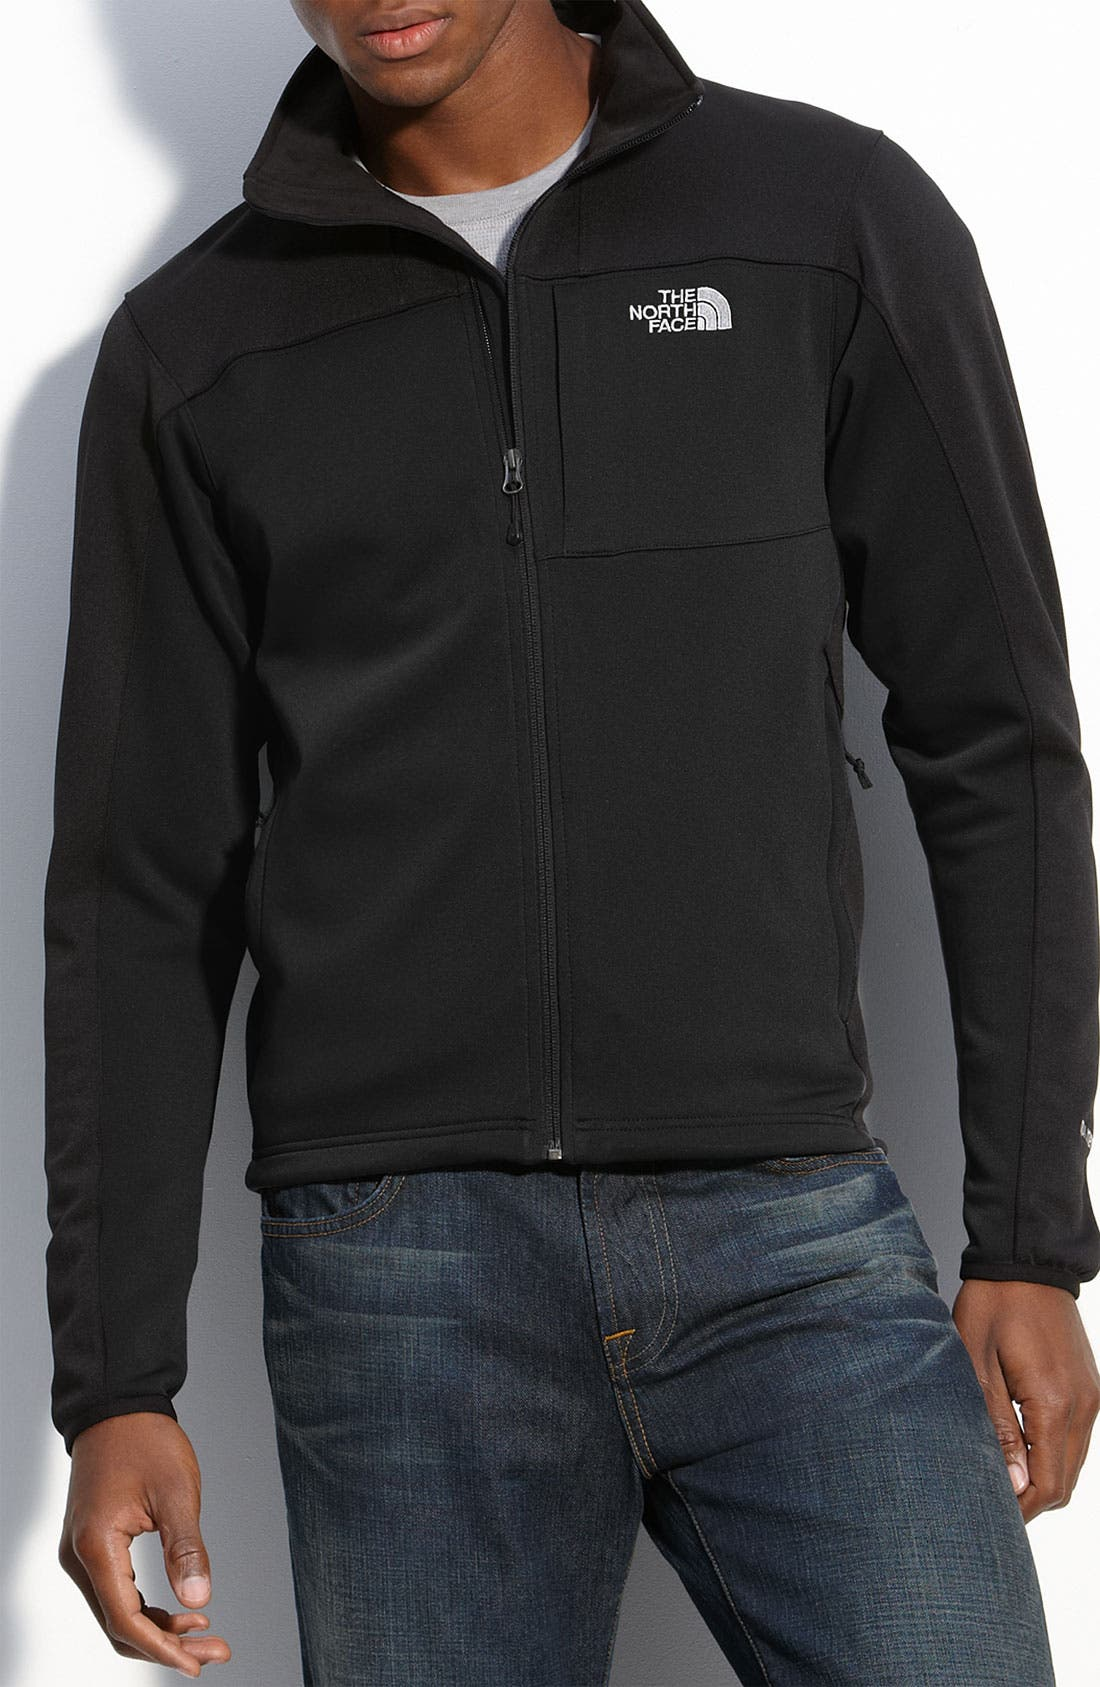 Main Image - The North Face 'Momentum' Performance Jacket